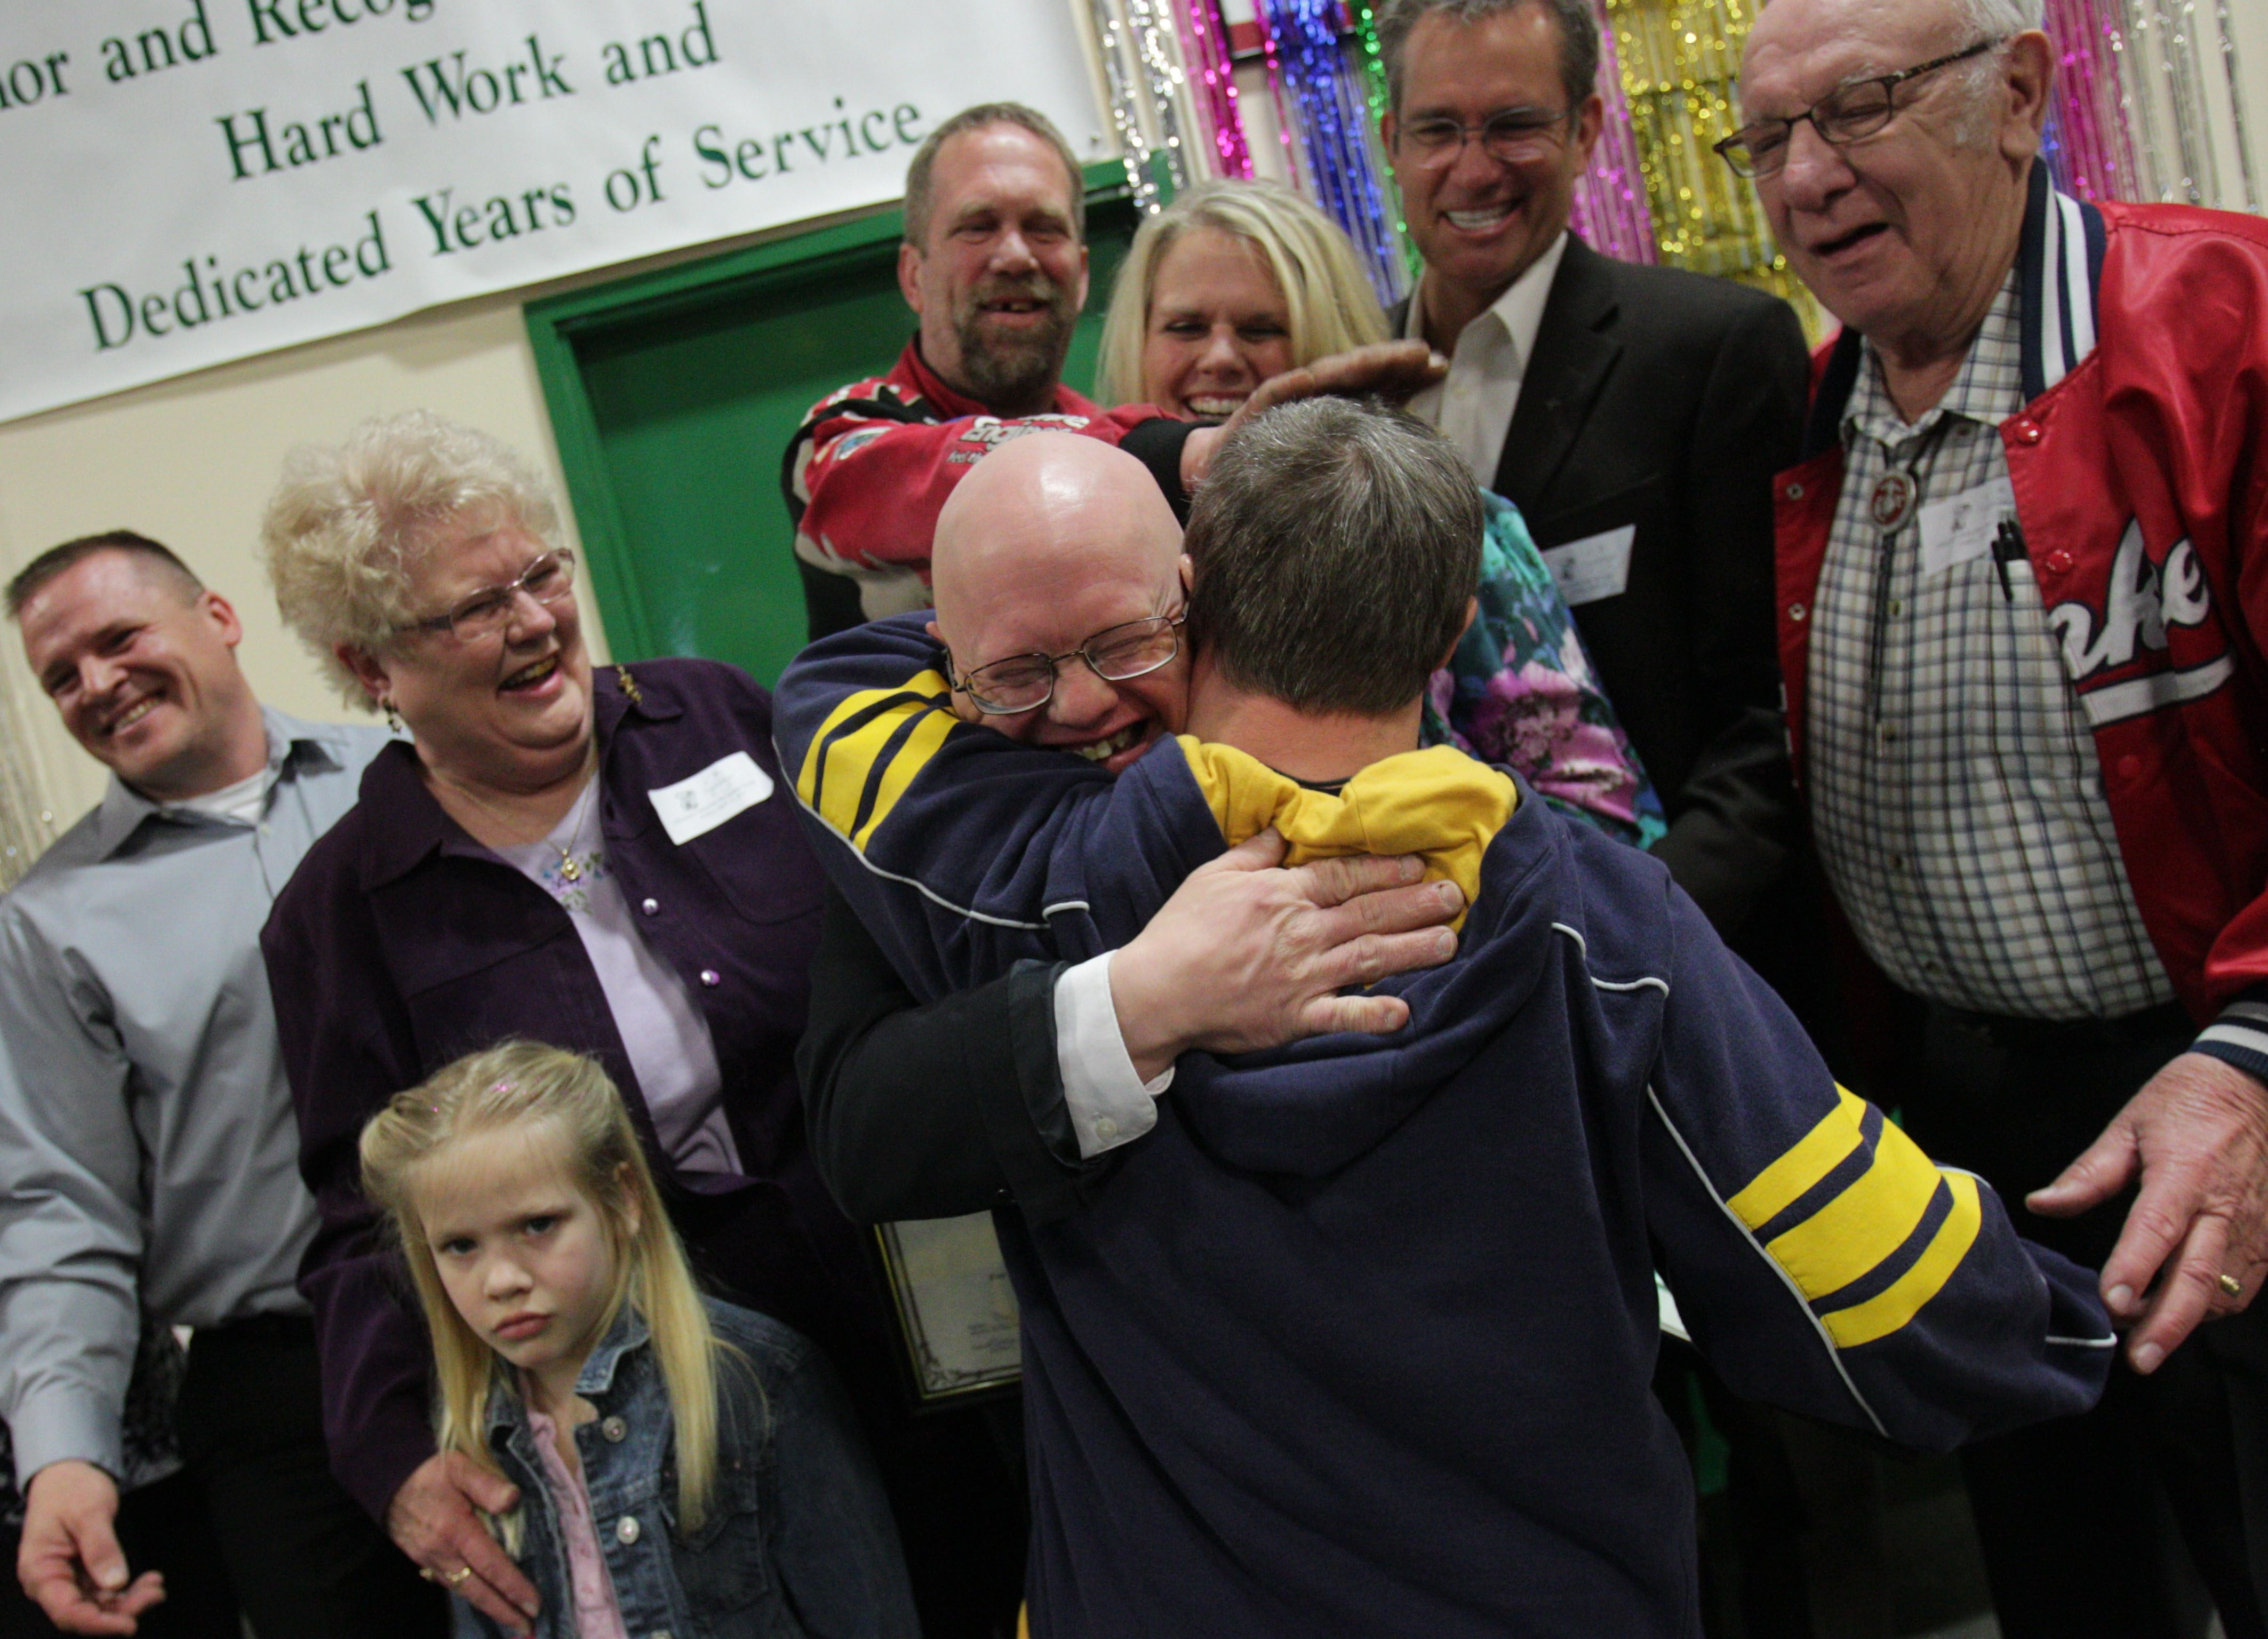 Bob Edwards, wearing glasses, was honored for 25 years of service and received a hug from his best friend, Jon Sereno. See a photo gallery of the event at Buffalonews.com